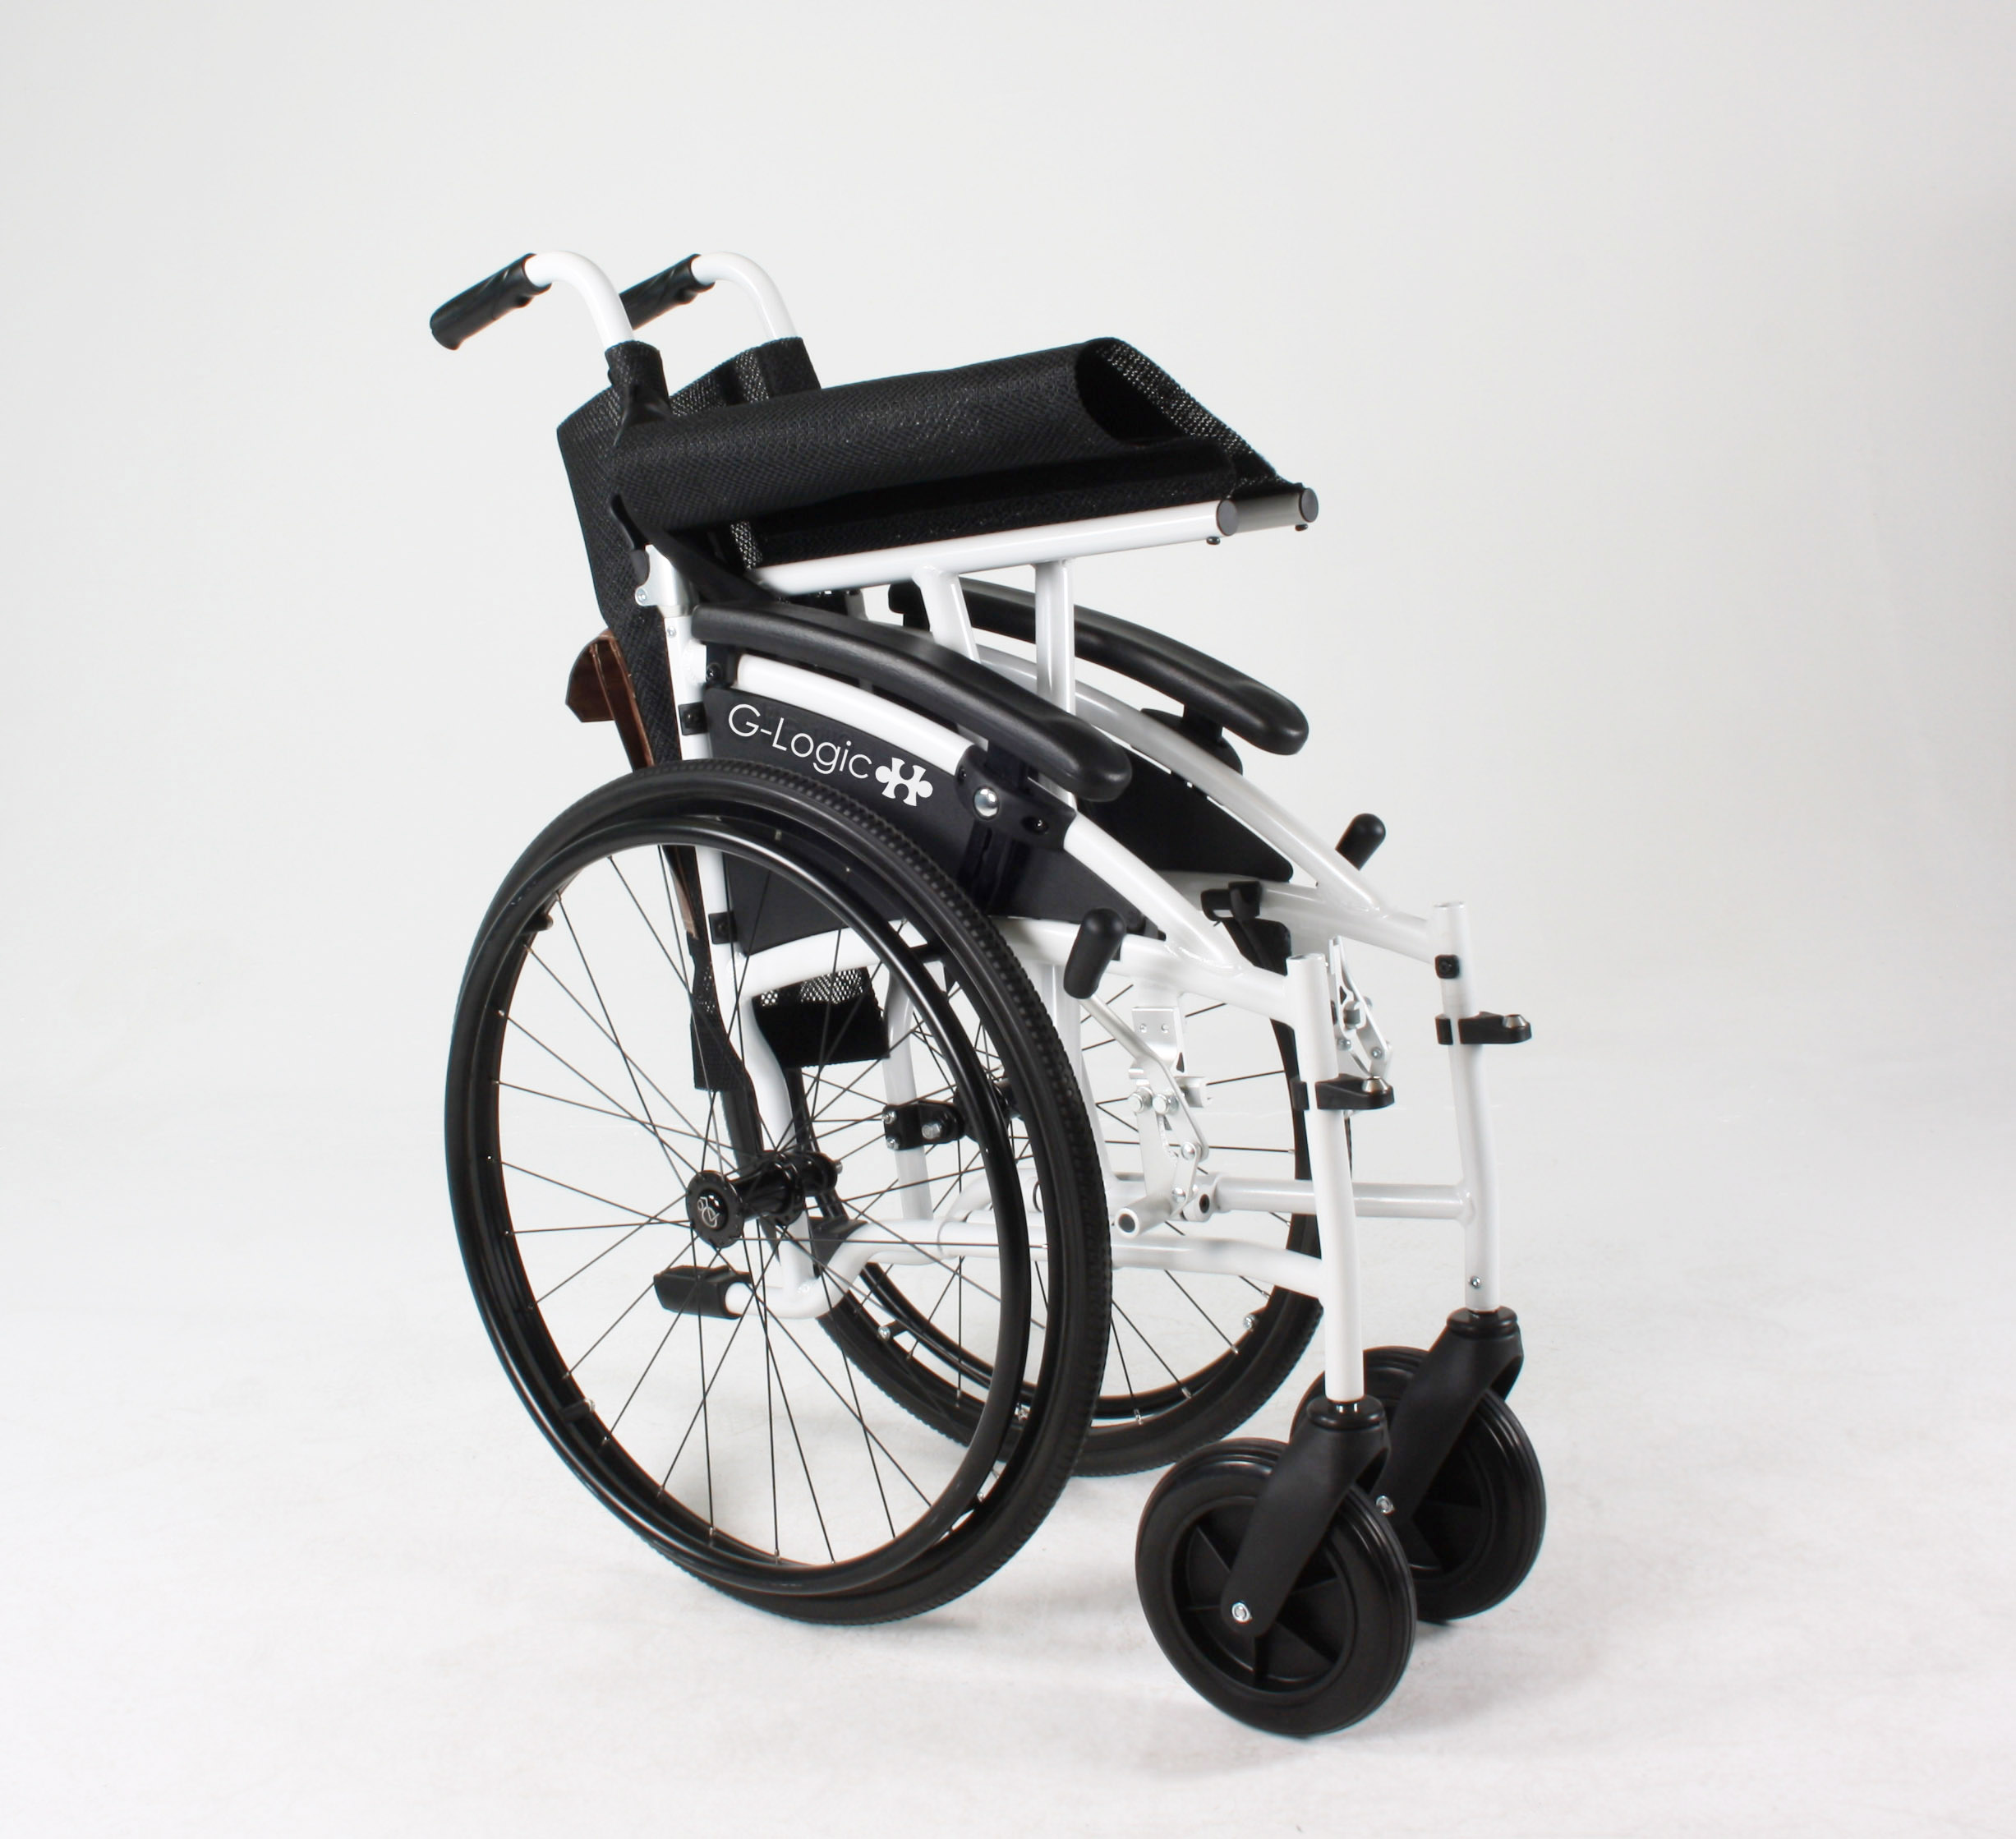 Excel G Logic folding wheelchair by Van Os Medical at True Mobility Didcot Oxfordshire